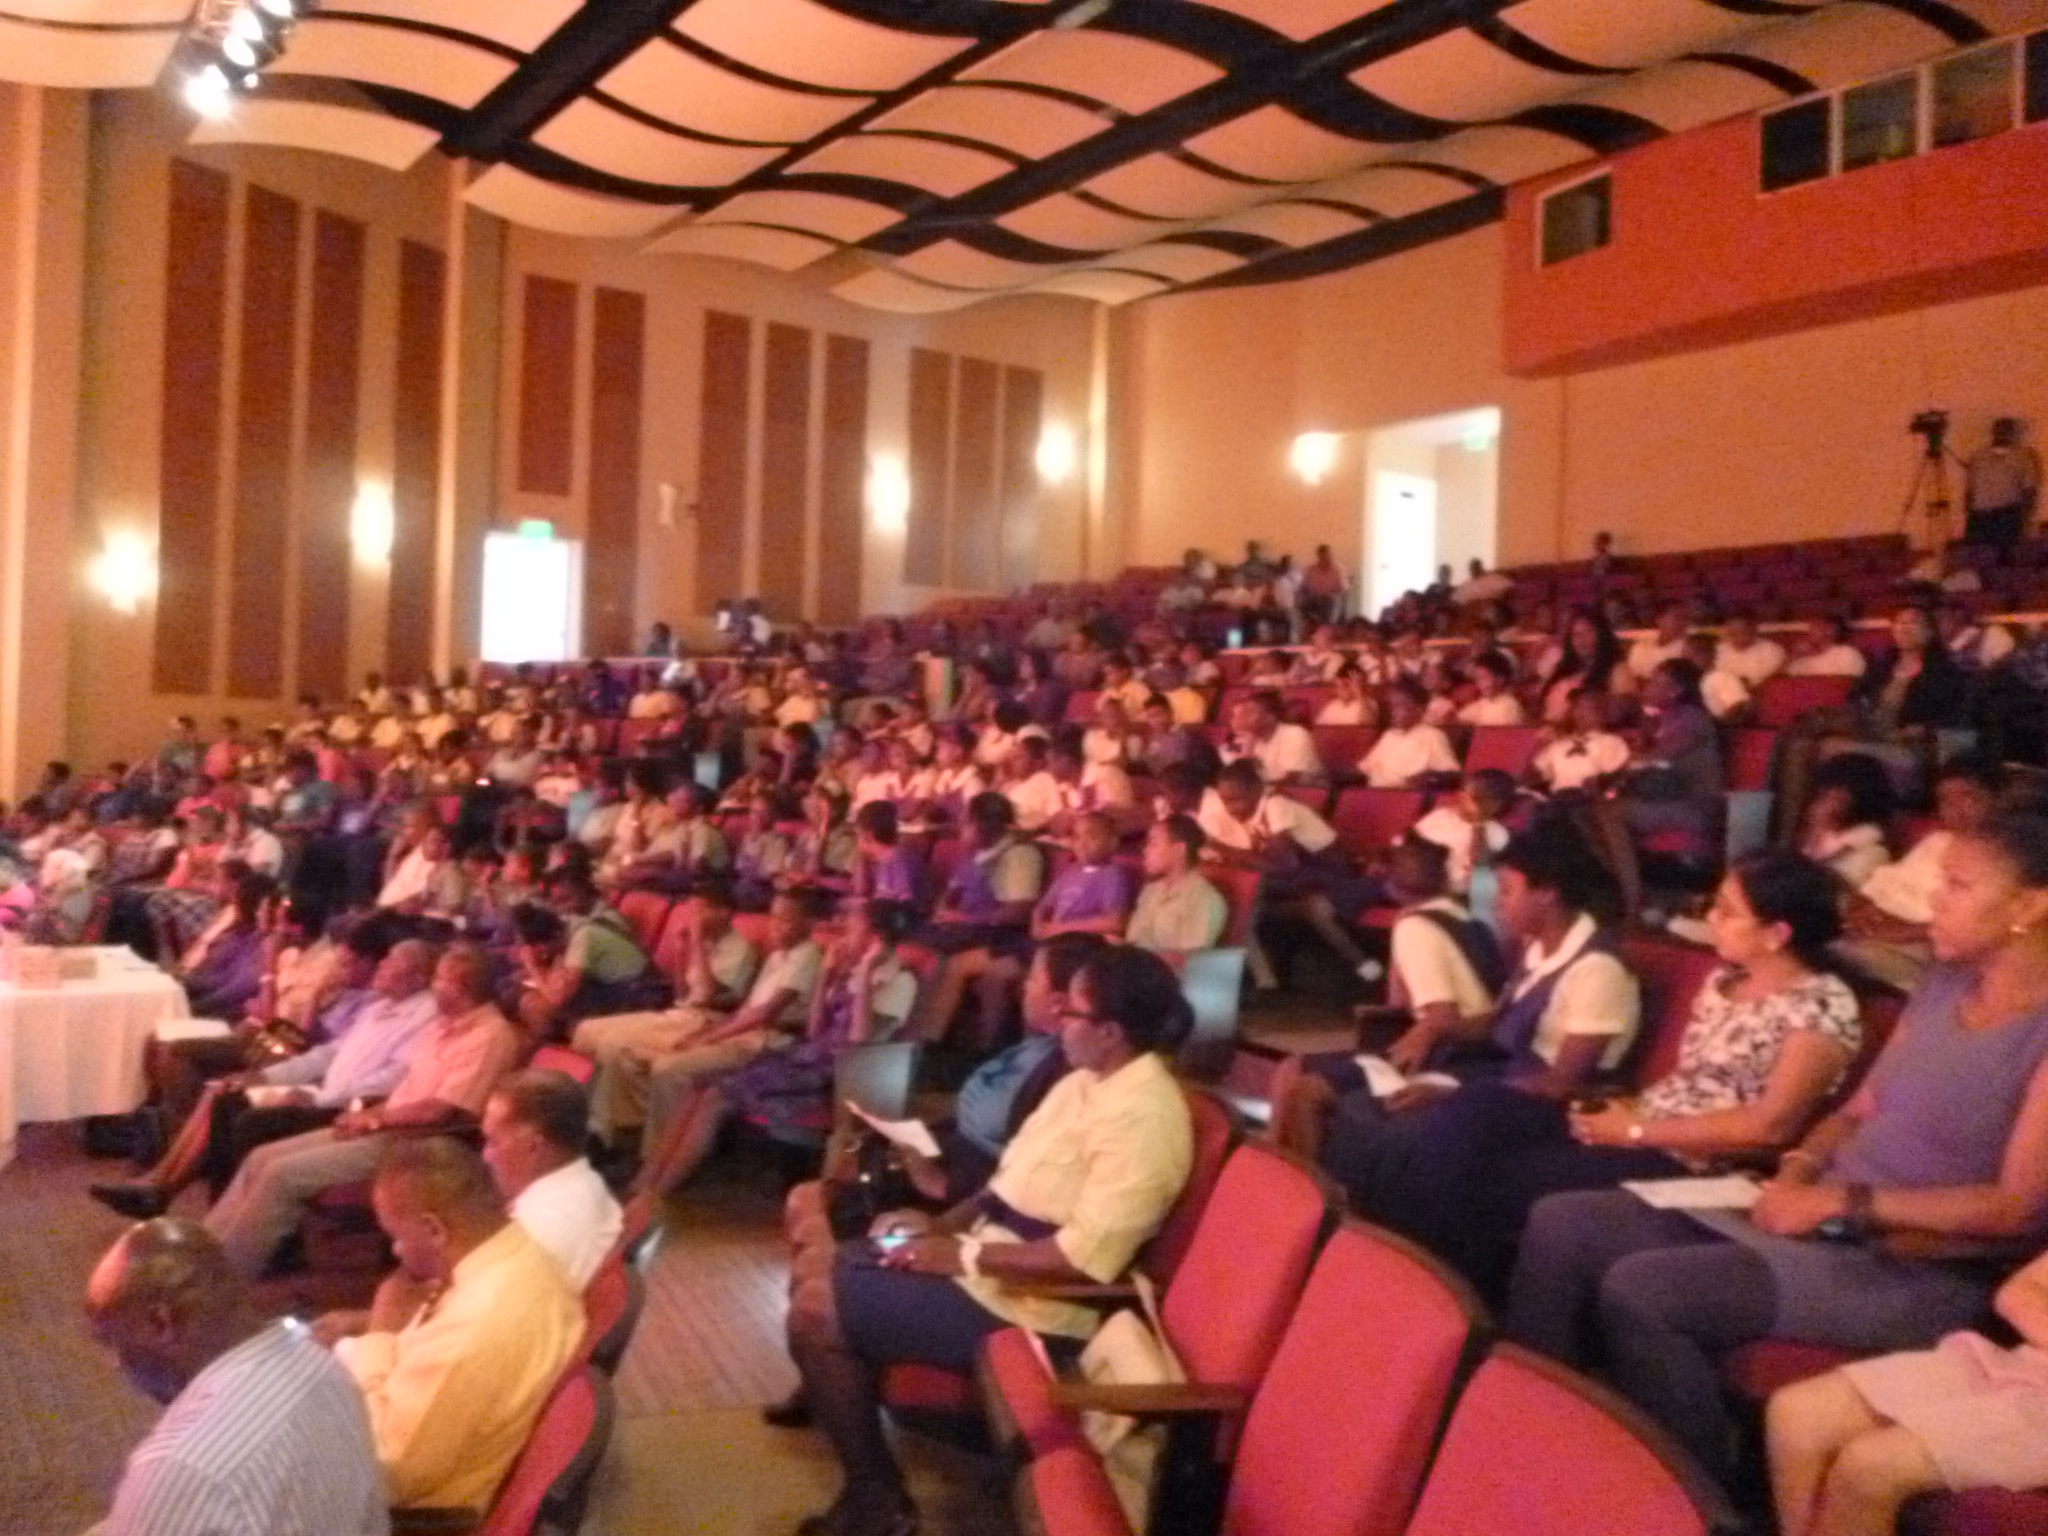 A cross section of audience at NEPAC.